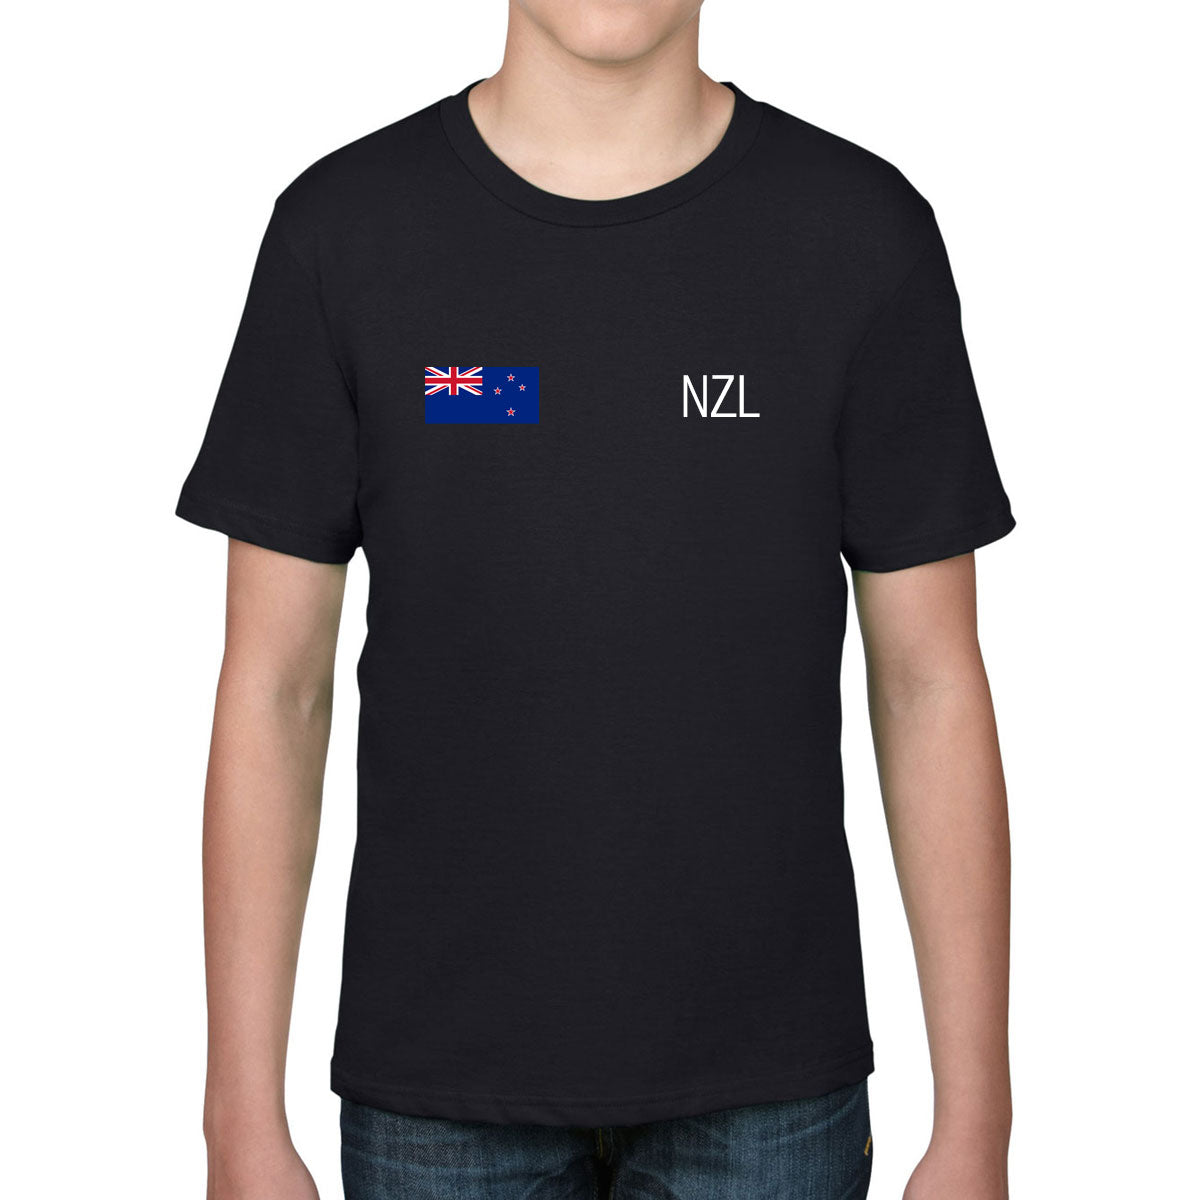 New Zealand Rugby Kid's Flag Tee - First XV rugbystuff.com